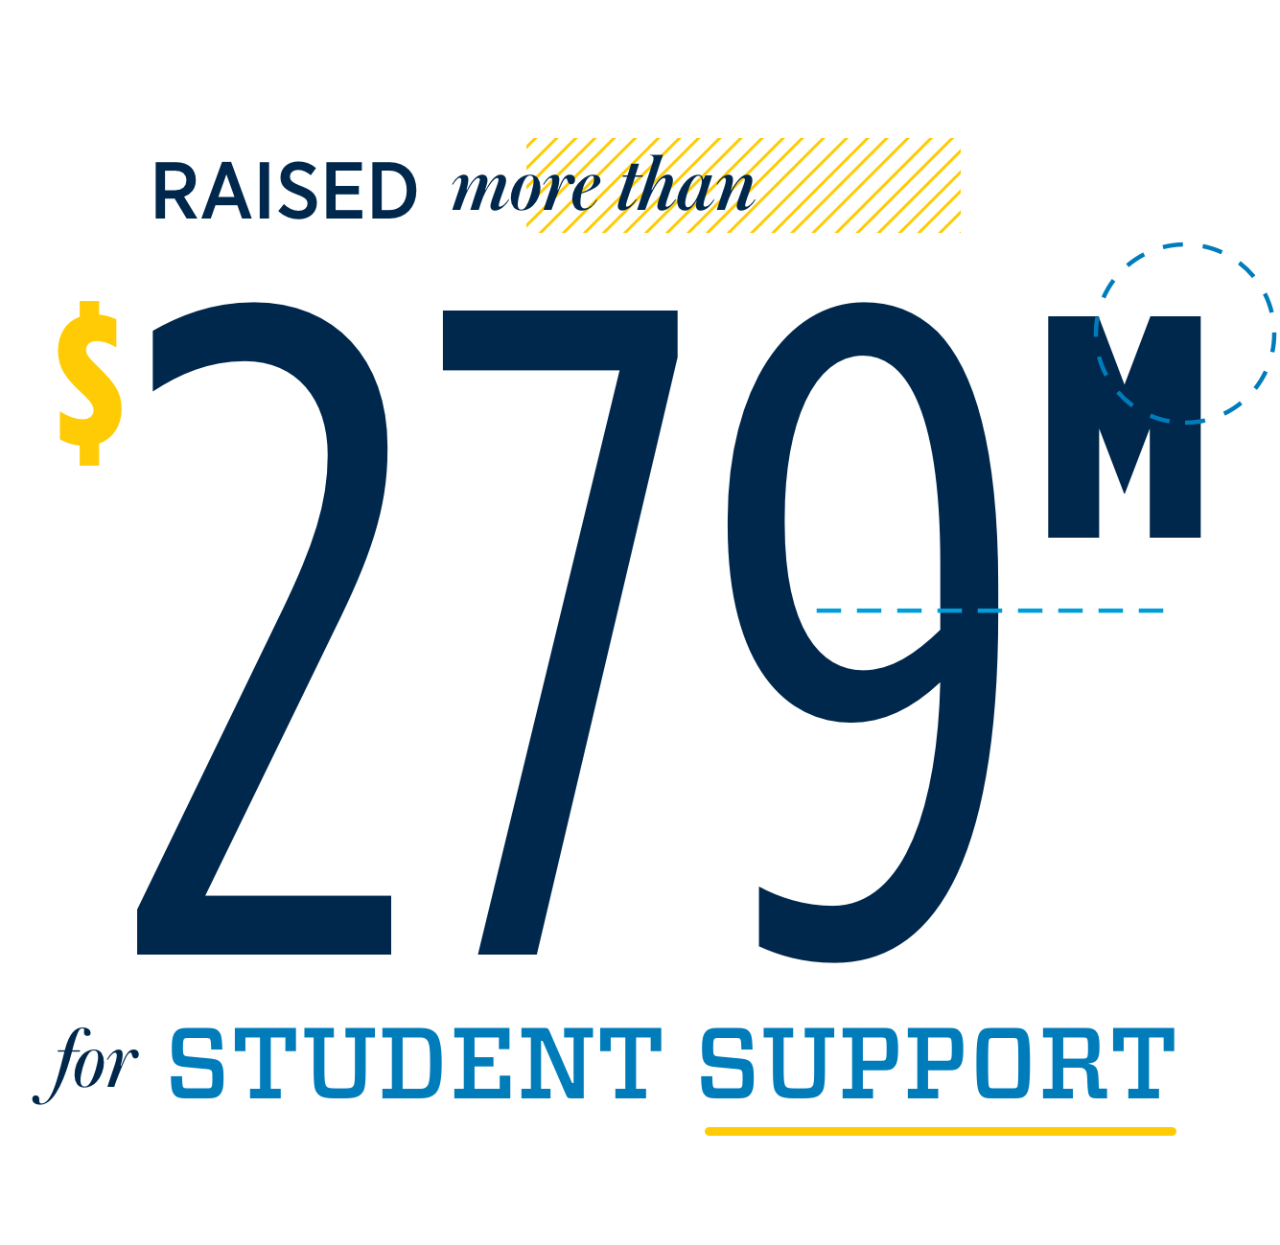 Raised more than $279 million for student support